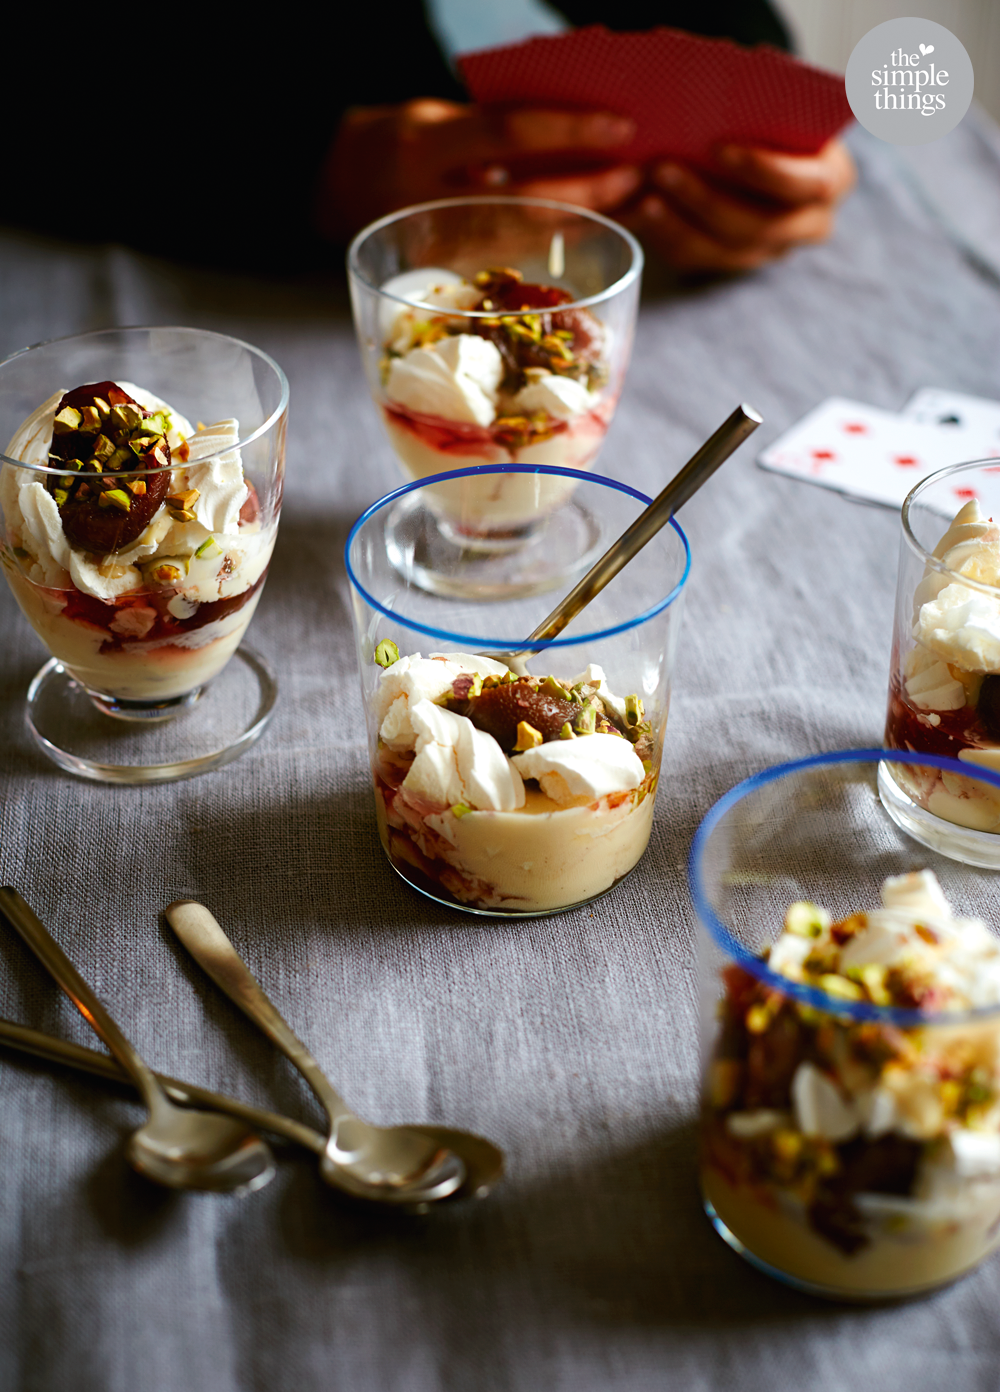 Autumn mess recipe - photography, food styling and recipe: Mowie Kay